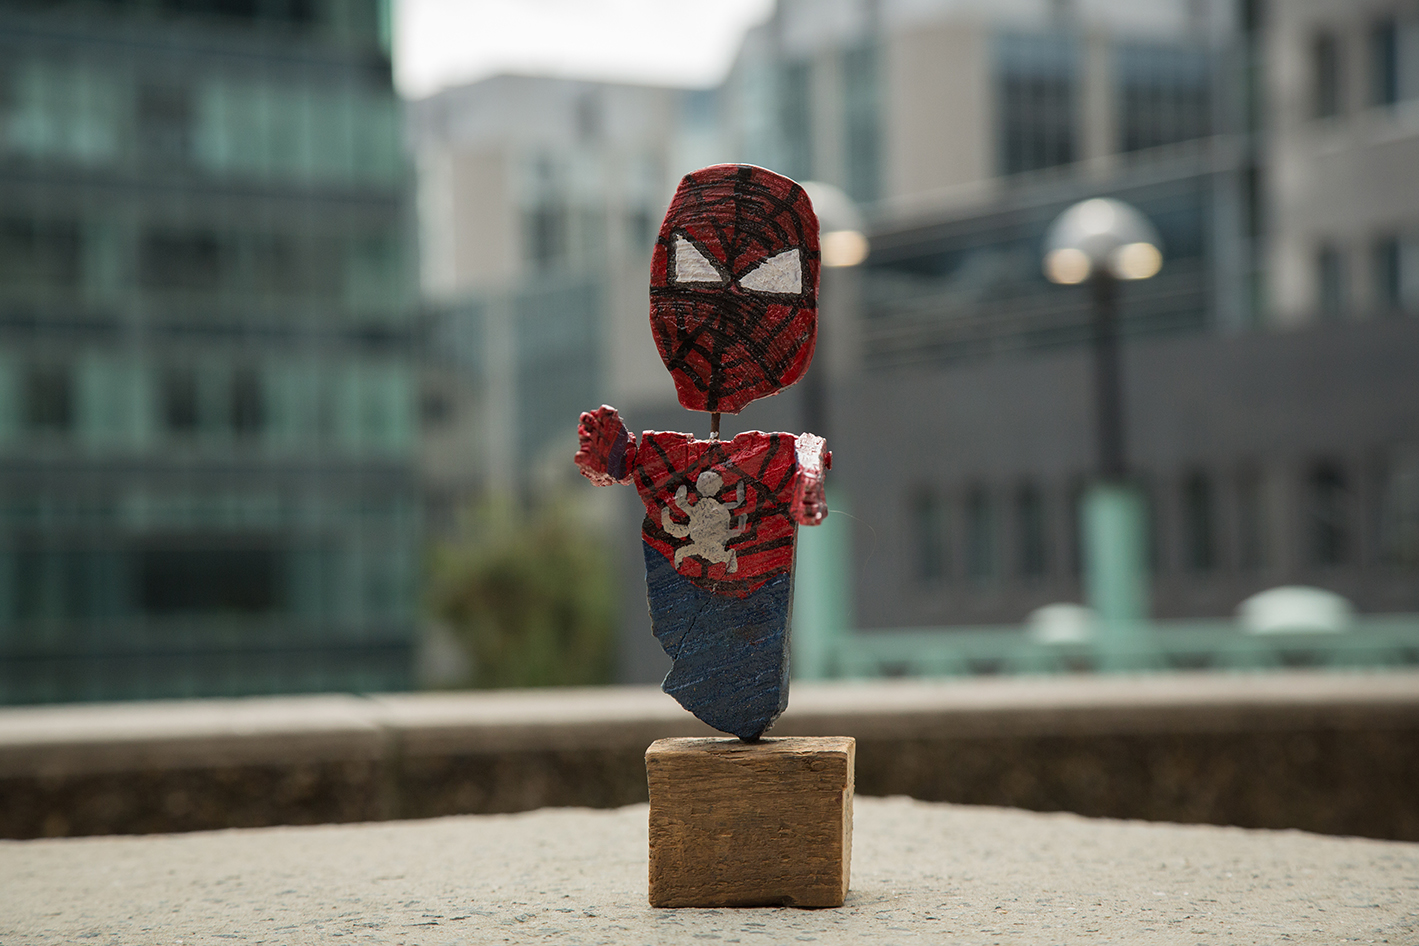 Spiderman is made of Wood